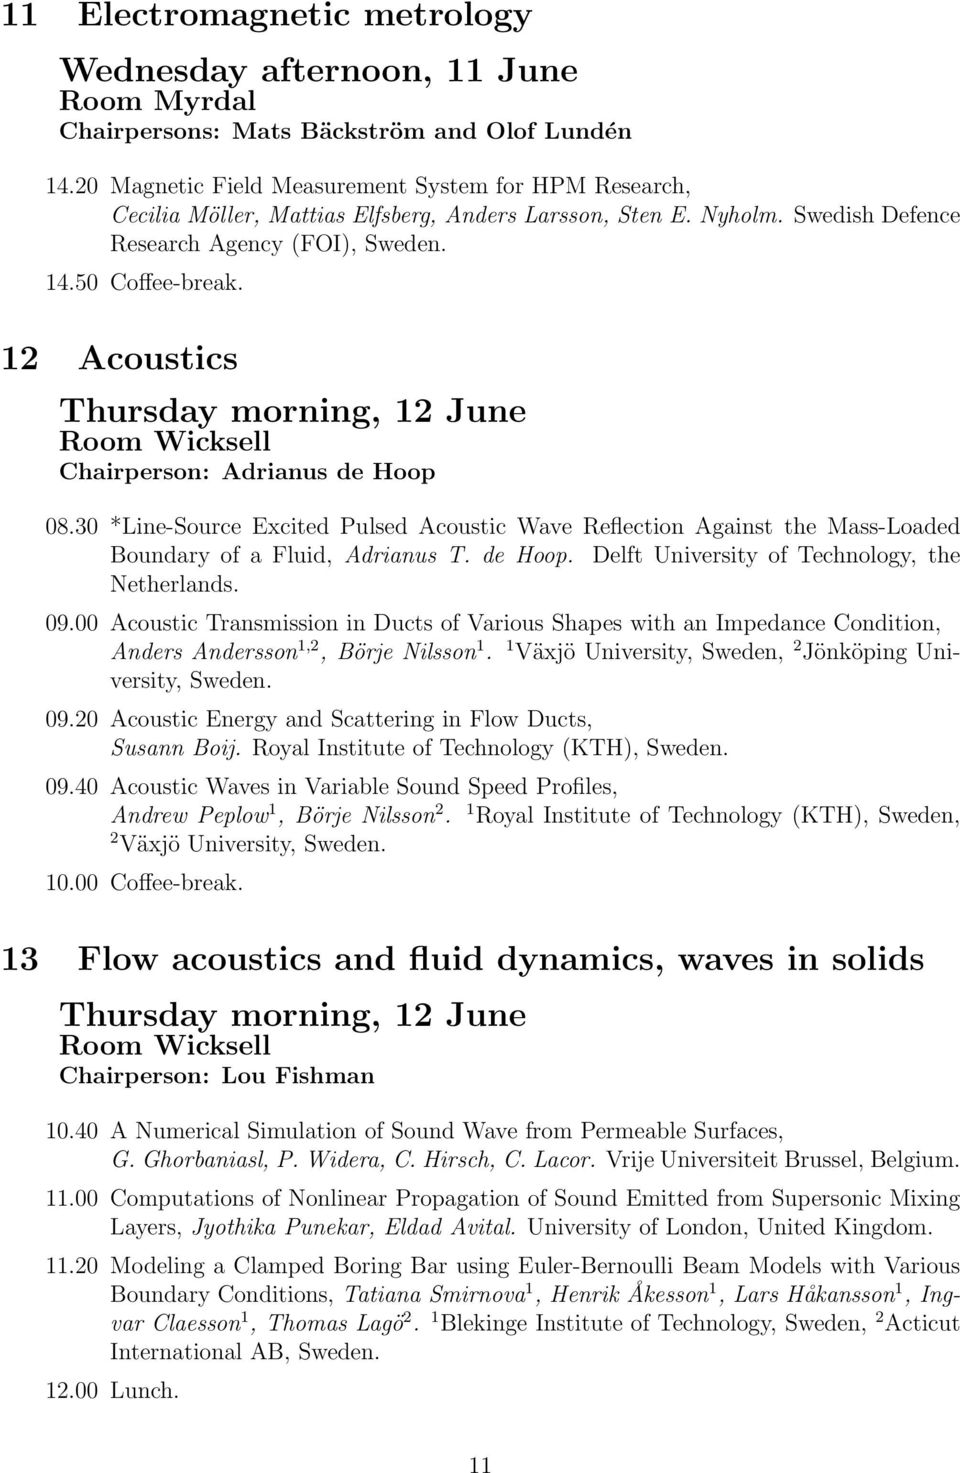 12 Acoustics Thursday morning, 12 June Chairperson: Adrianus de Hoop 08.30 *Line-Source Excited Pulsed Acoustic Wave Reflection Against the Mass-Loaded Boundary of a Fluid, Adrianus T. de Hoop. Delft University of Technology, the Netherlands.